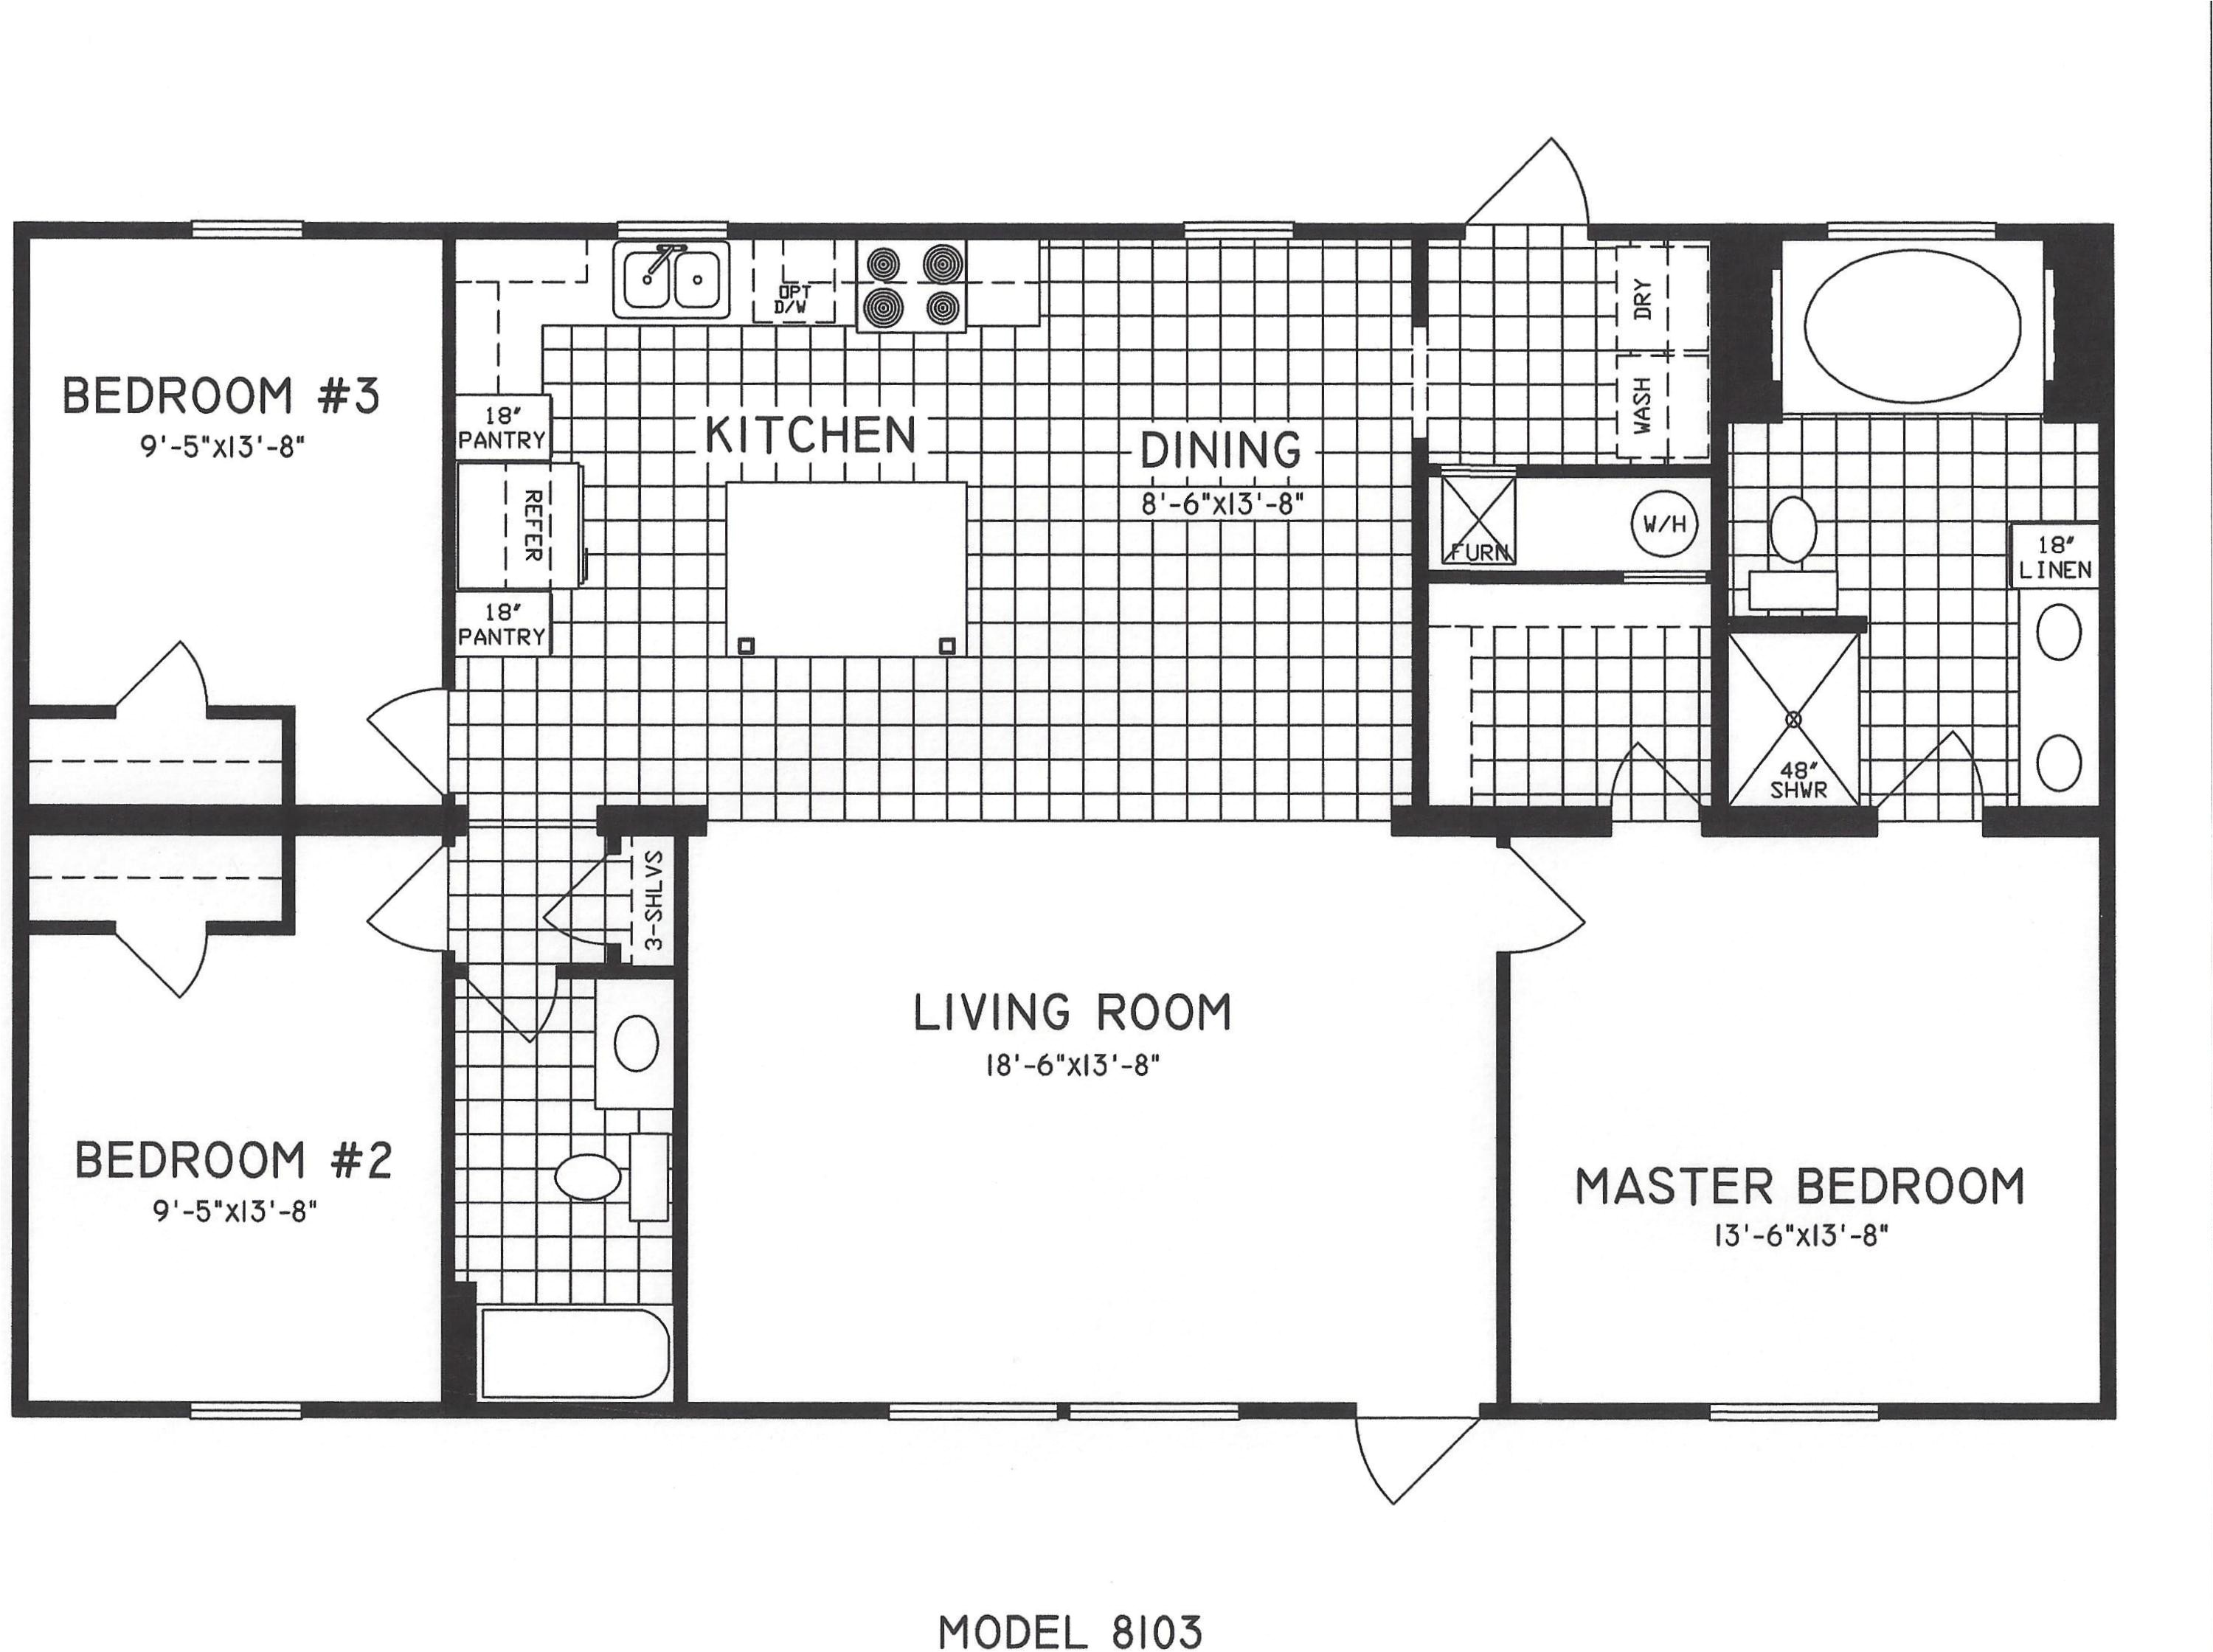 3 bedroom floor plan c 8103 2